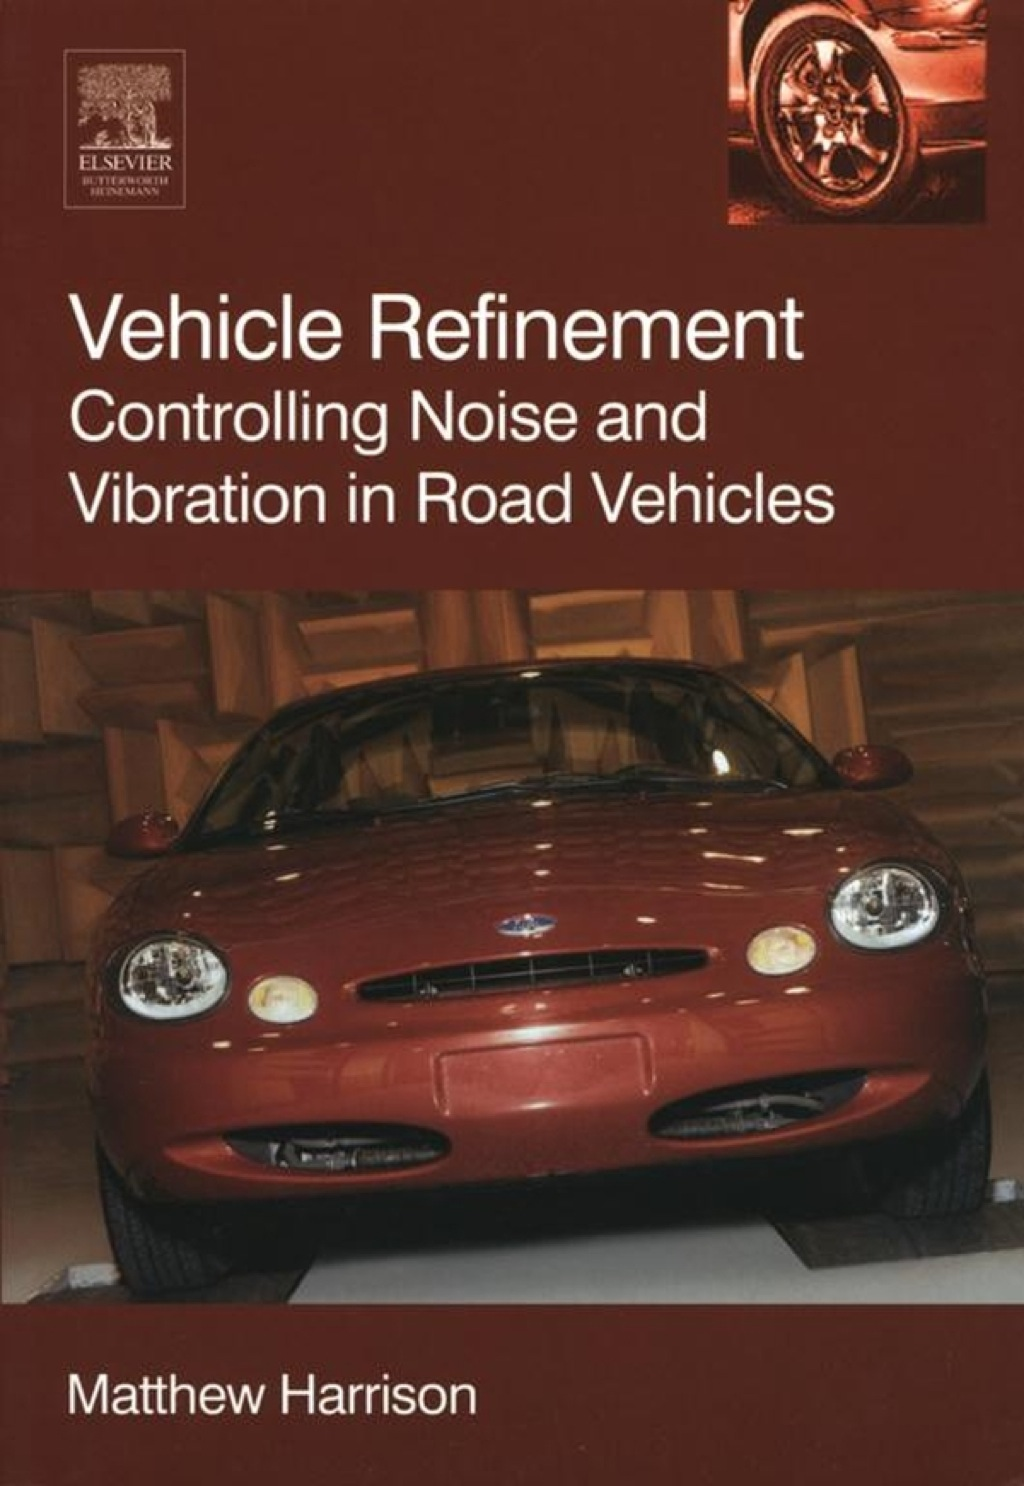 Vehicle Refinement: Controlling Noise and Vibration in Road Vehicles (ebook) eBooks